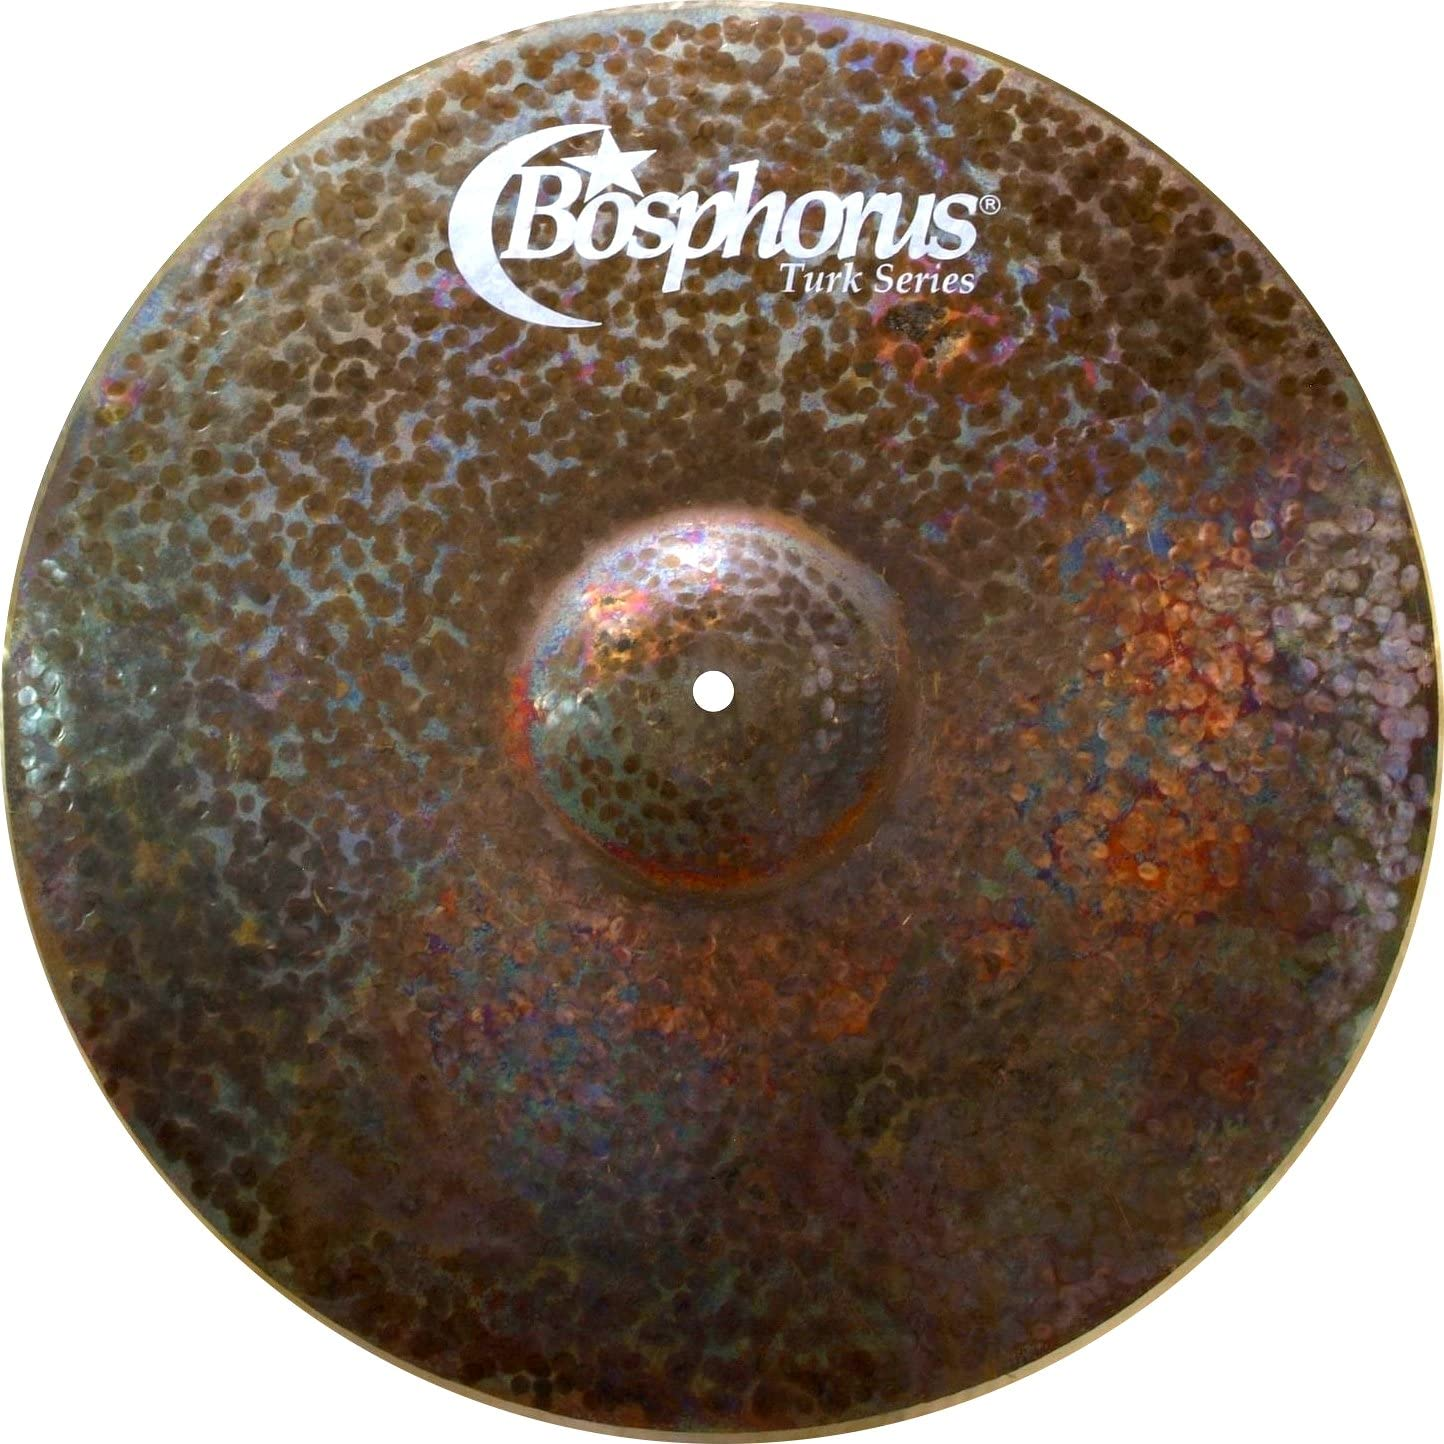 Directly managed store Same day shipping Bosphorus Cymbals K21RM 21-Inch Turk Cymbal Ride Series